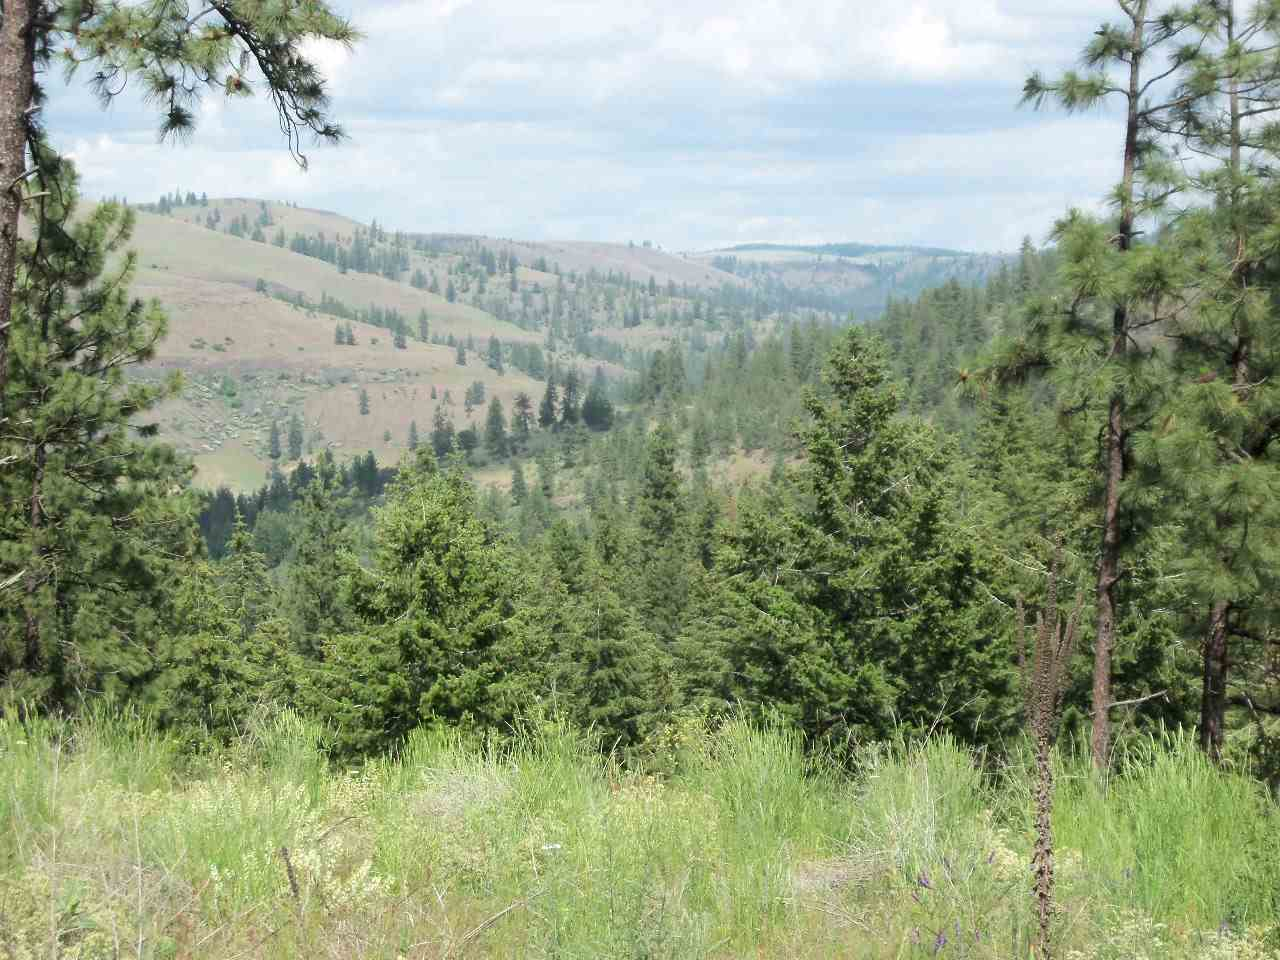 Land for Sale at XX Olsen Canyon Road XX Olsen Canyon Road Davenport, Washington 99122 United States